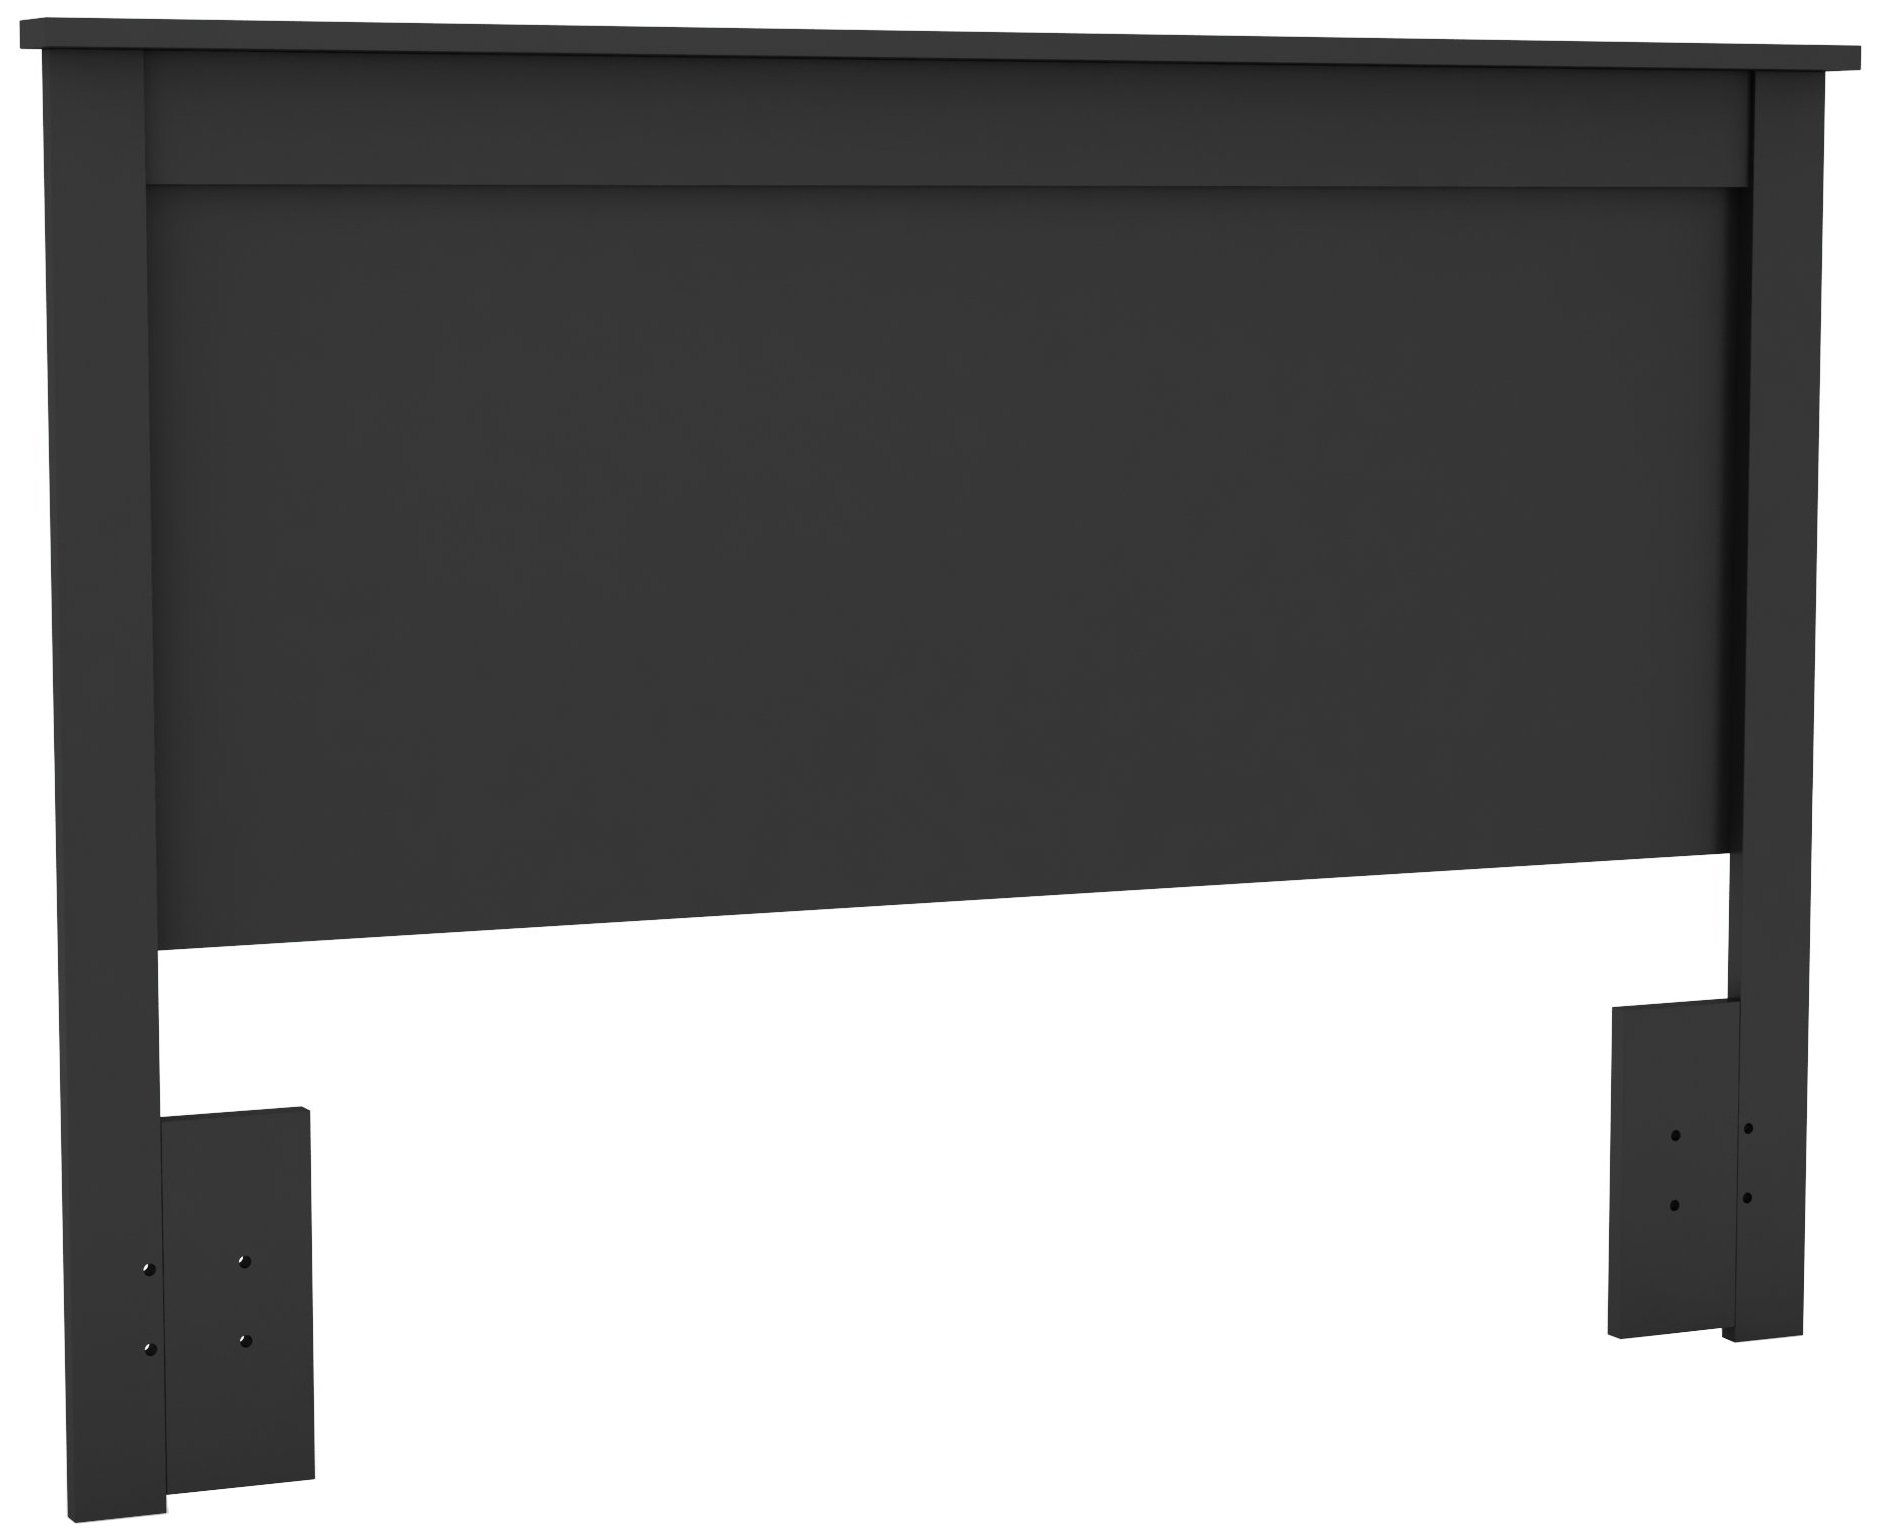 South Shore Vito Headboard Full/Queen , 54/60-Inch, Black by South Shore